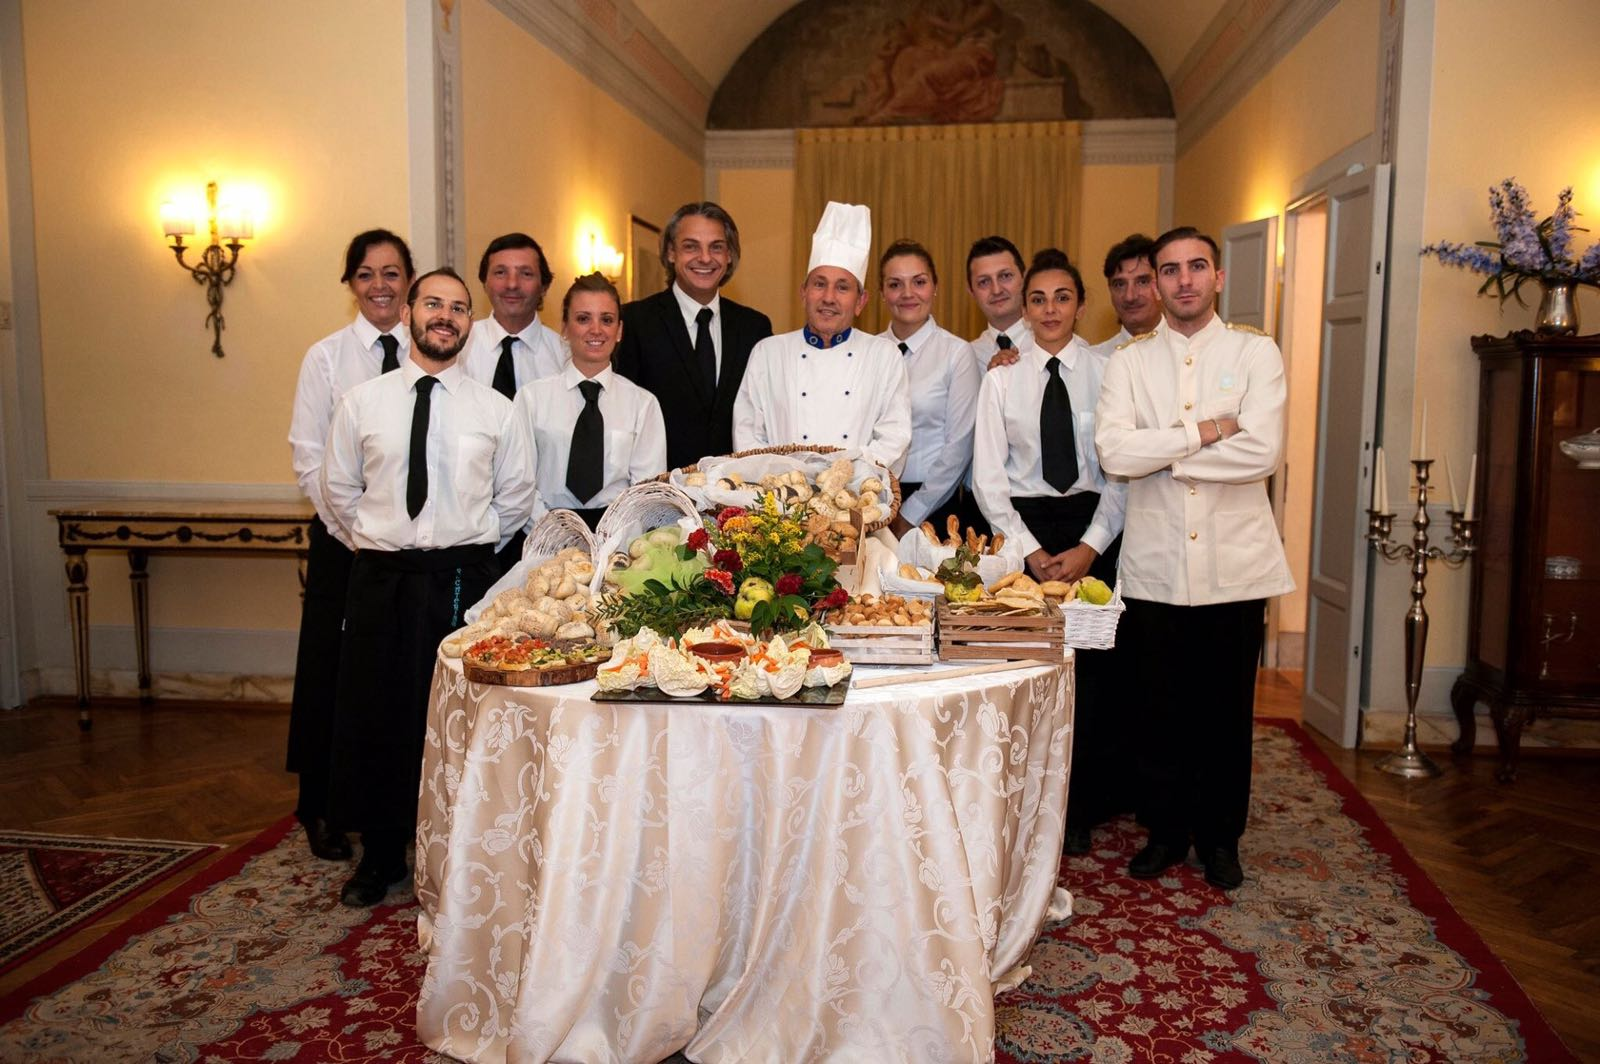 staff aurora catering